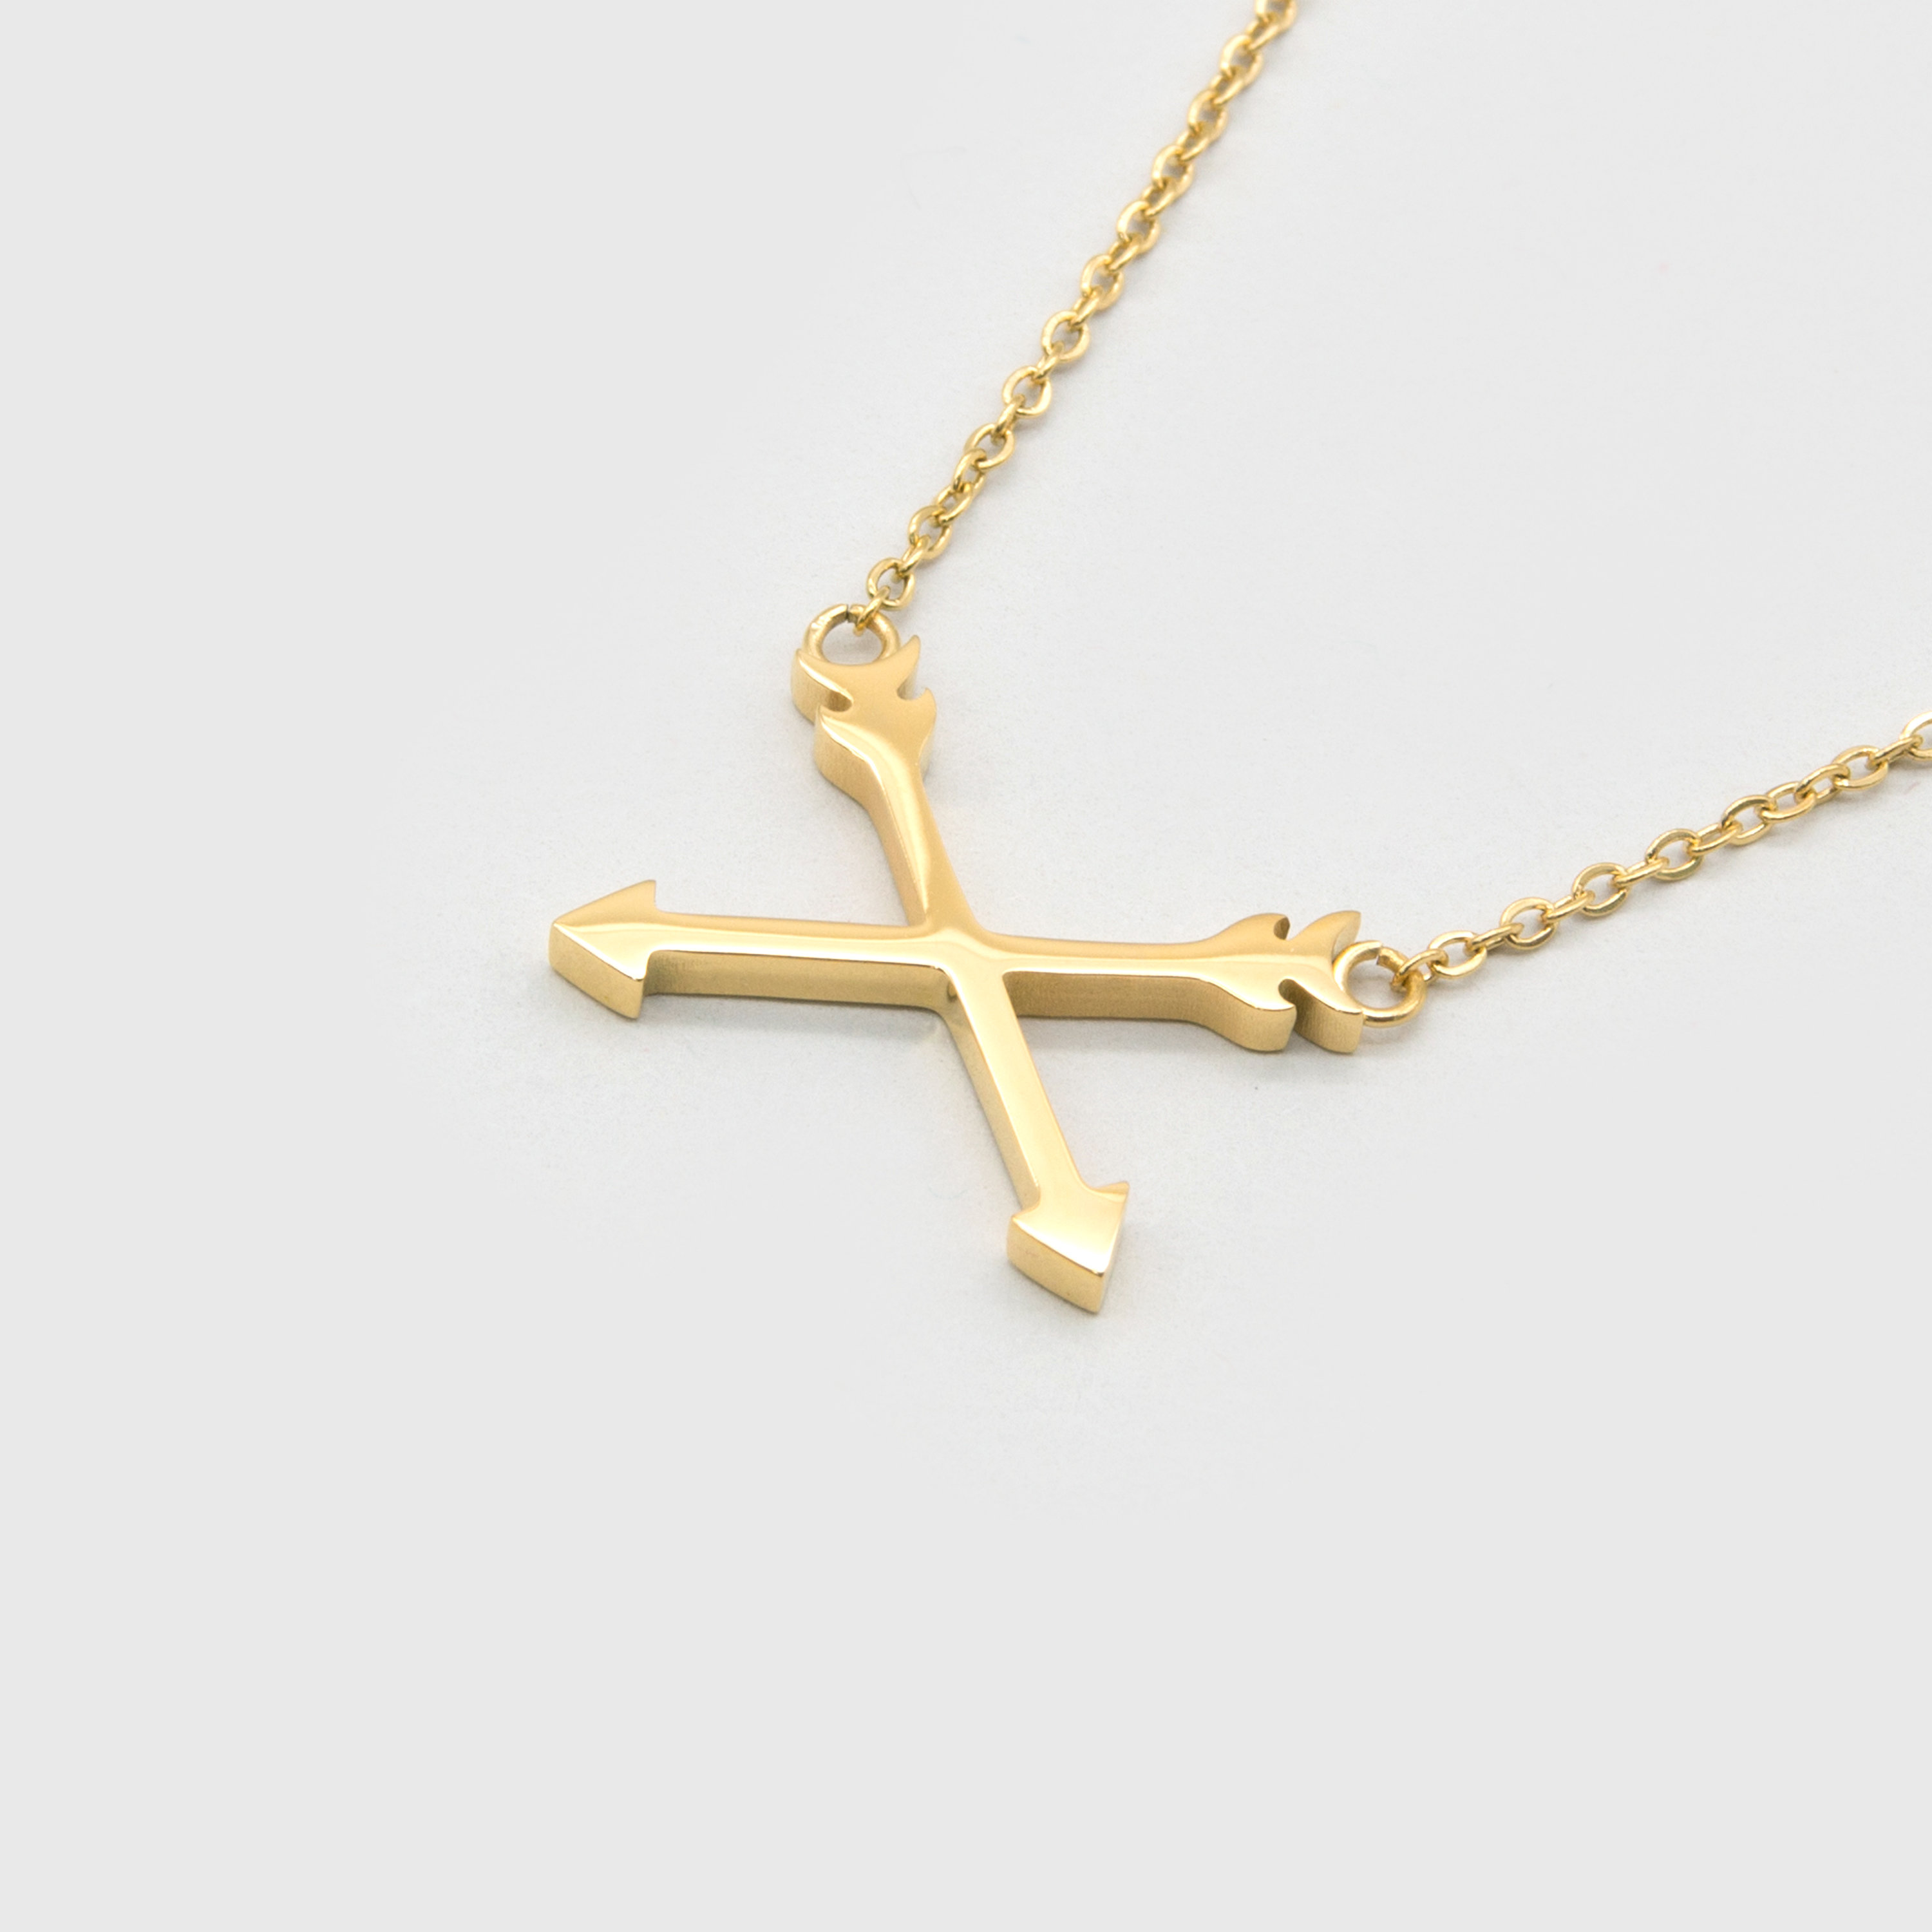 Kuku gold arrow necklace